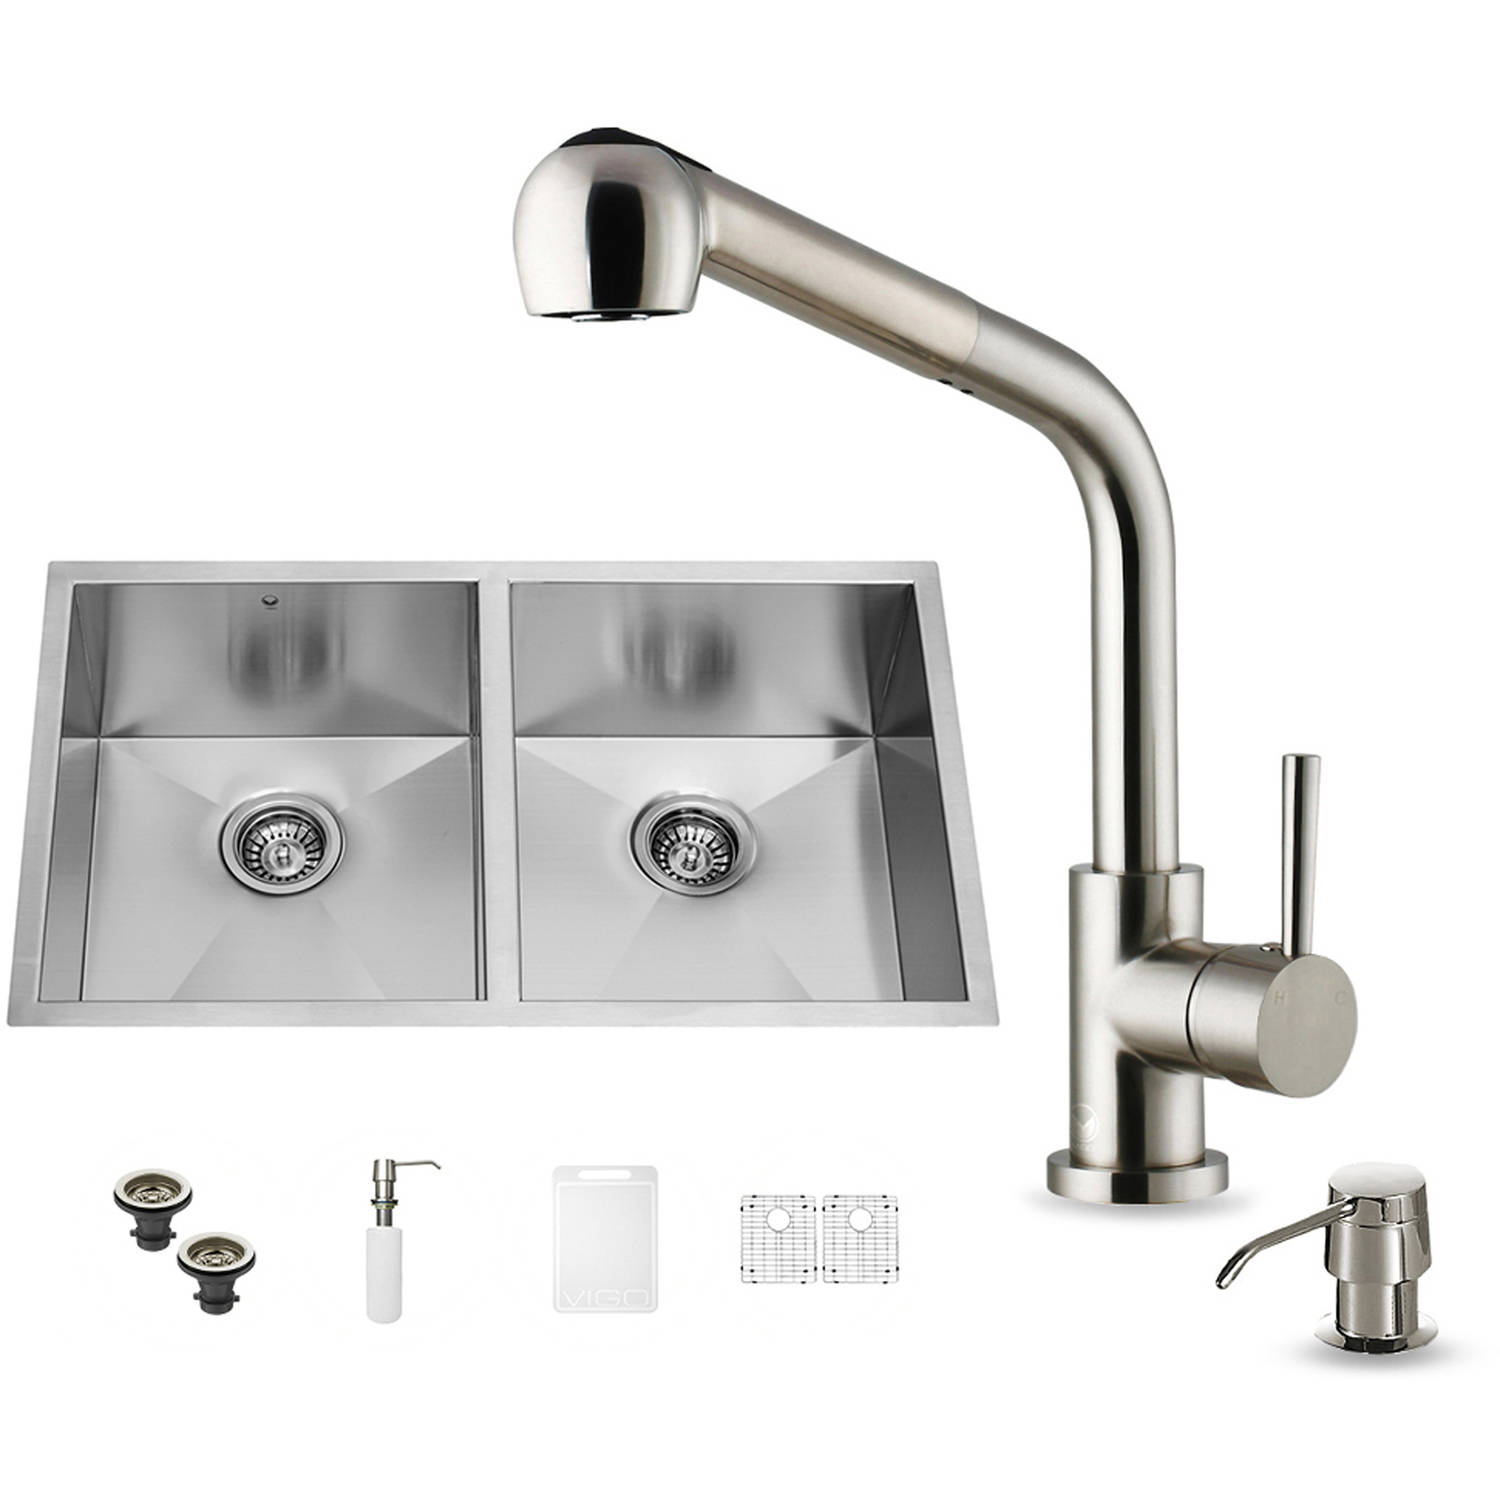 """Vigo All-in-One 32"""" Undermount Stainless Steel Double Bowl Kitchen Sink and Faucet Set"""